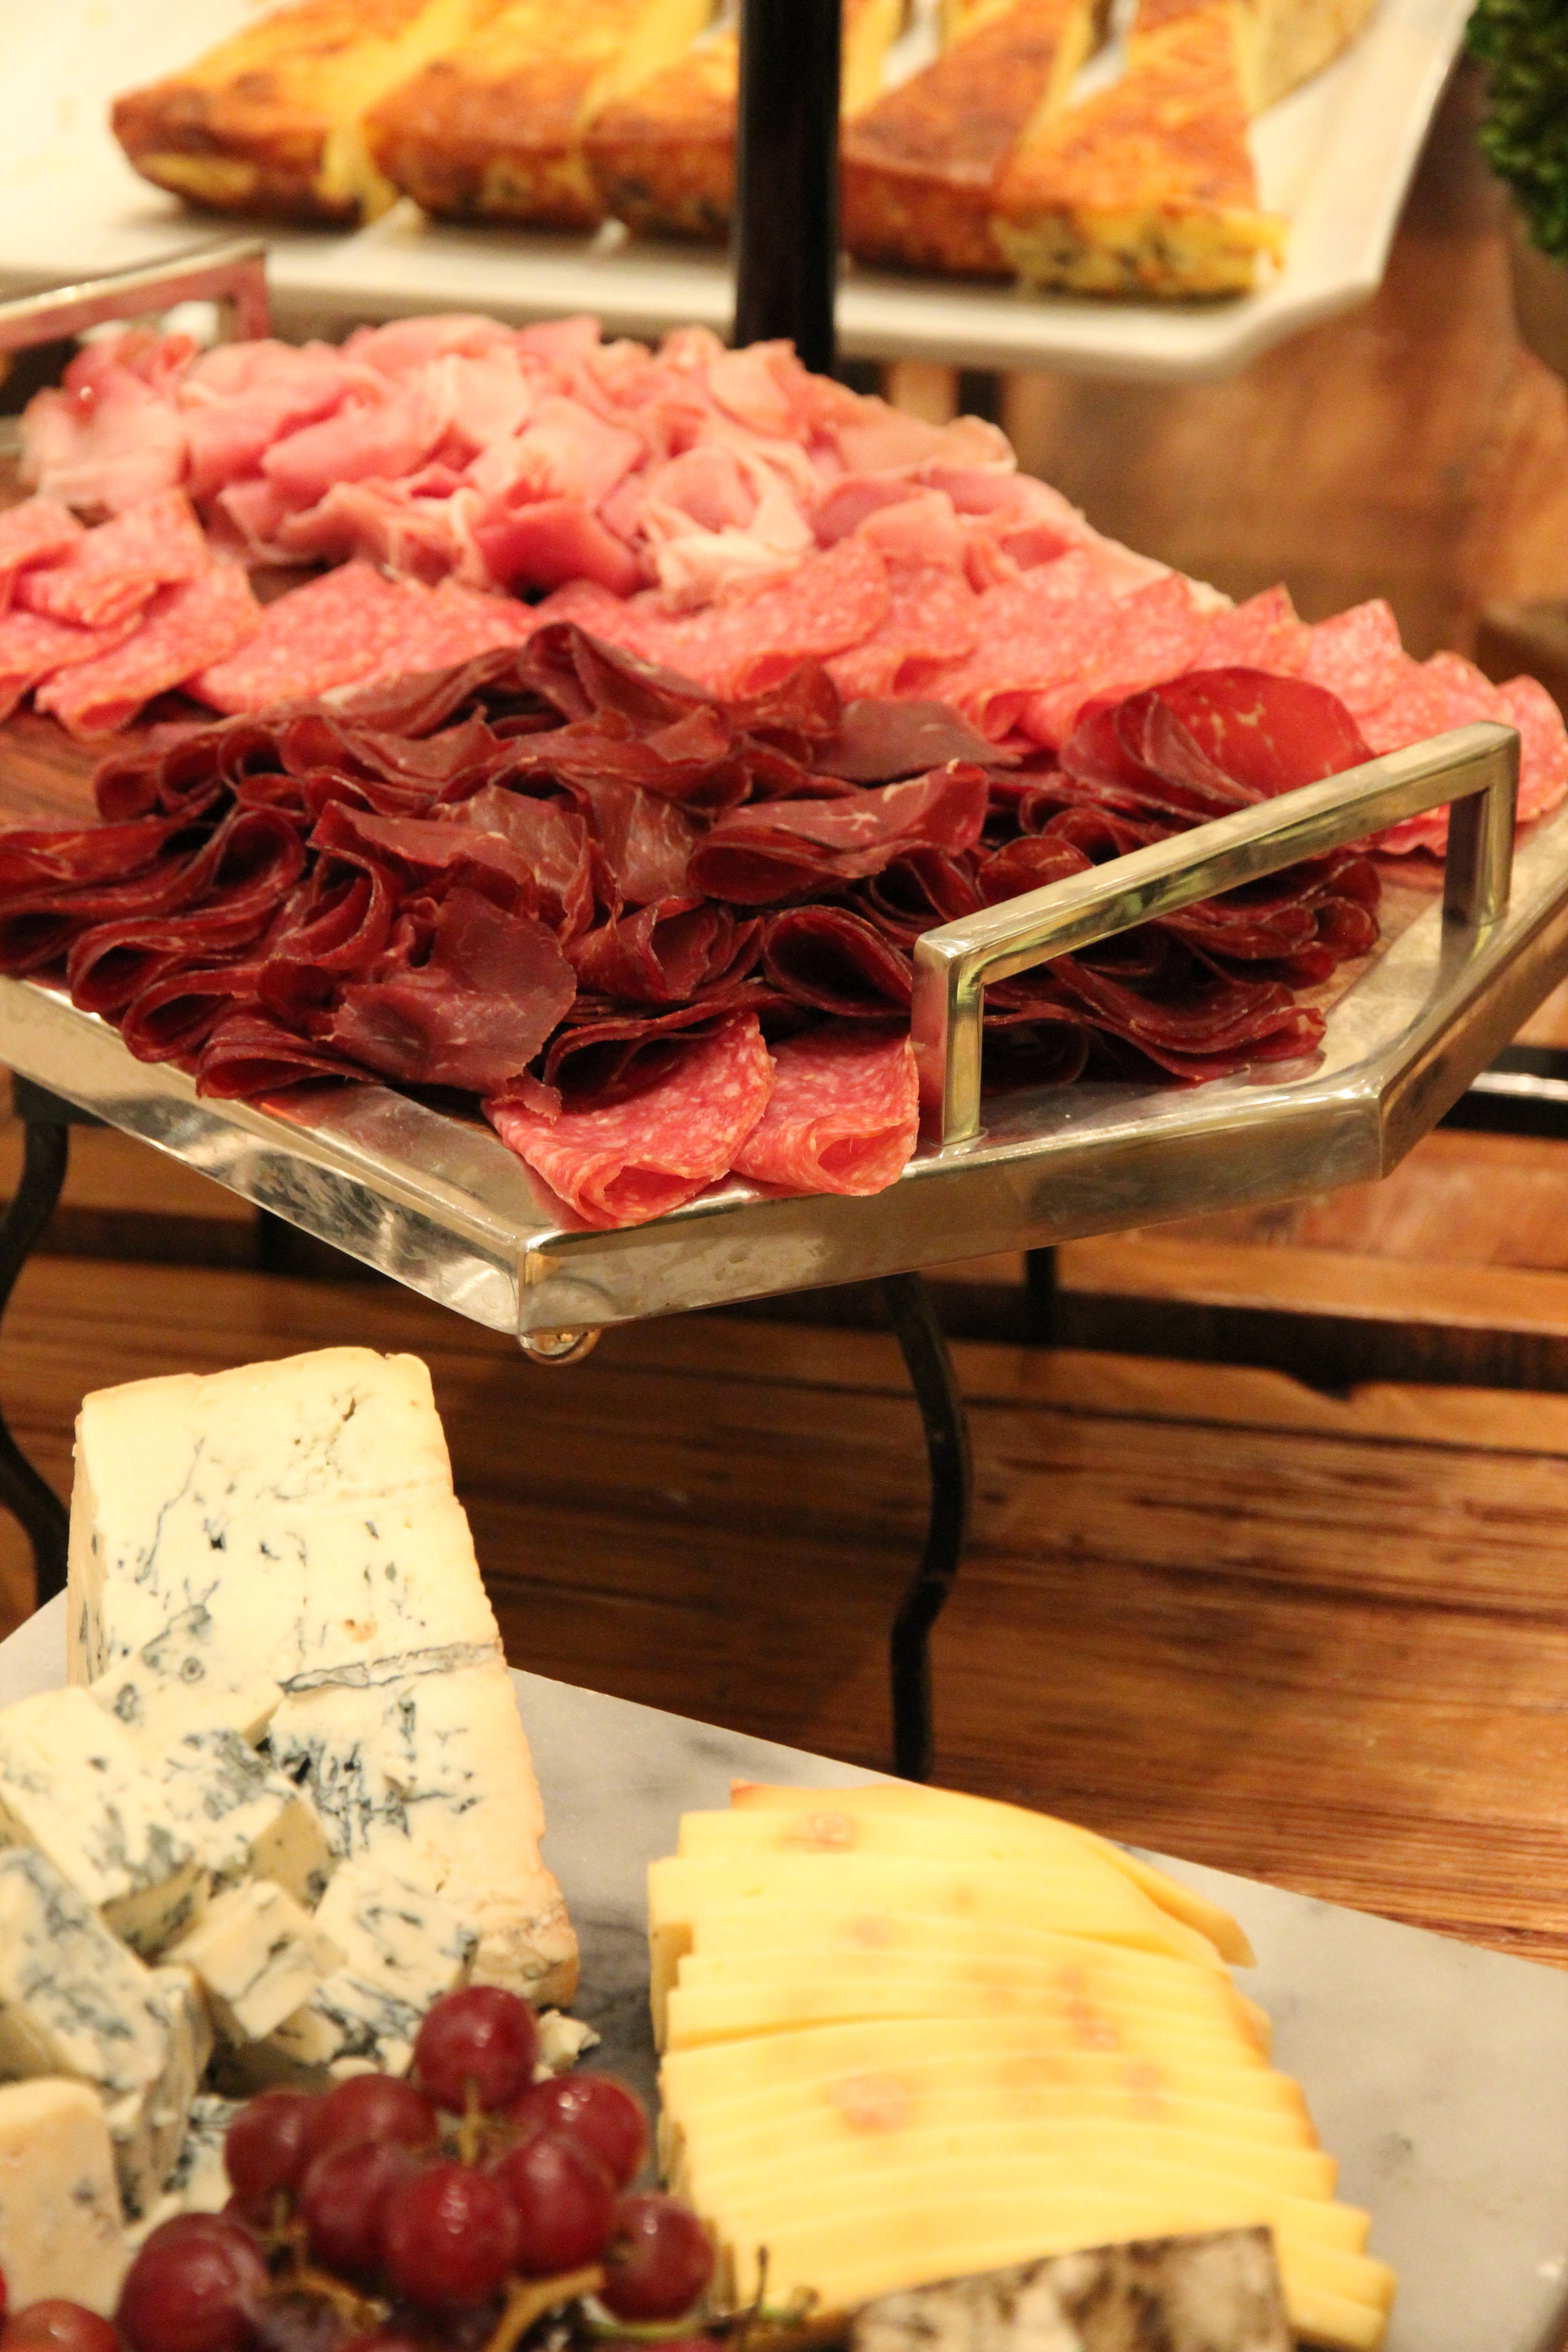 Charcuterie and cheese at the National Gallery of Art Garden Cafe brunch. ( Photo compliments the National Gallery of Art )